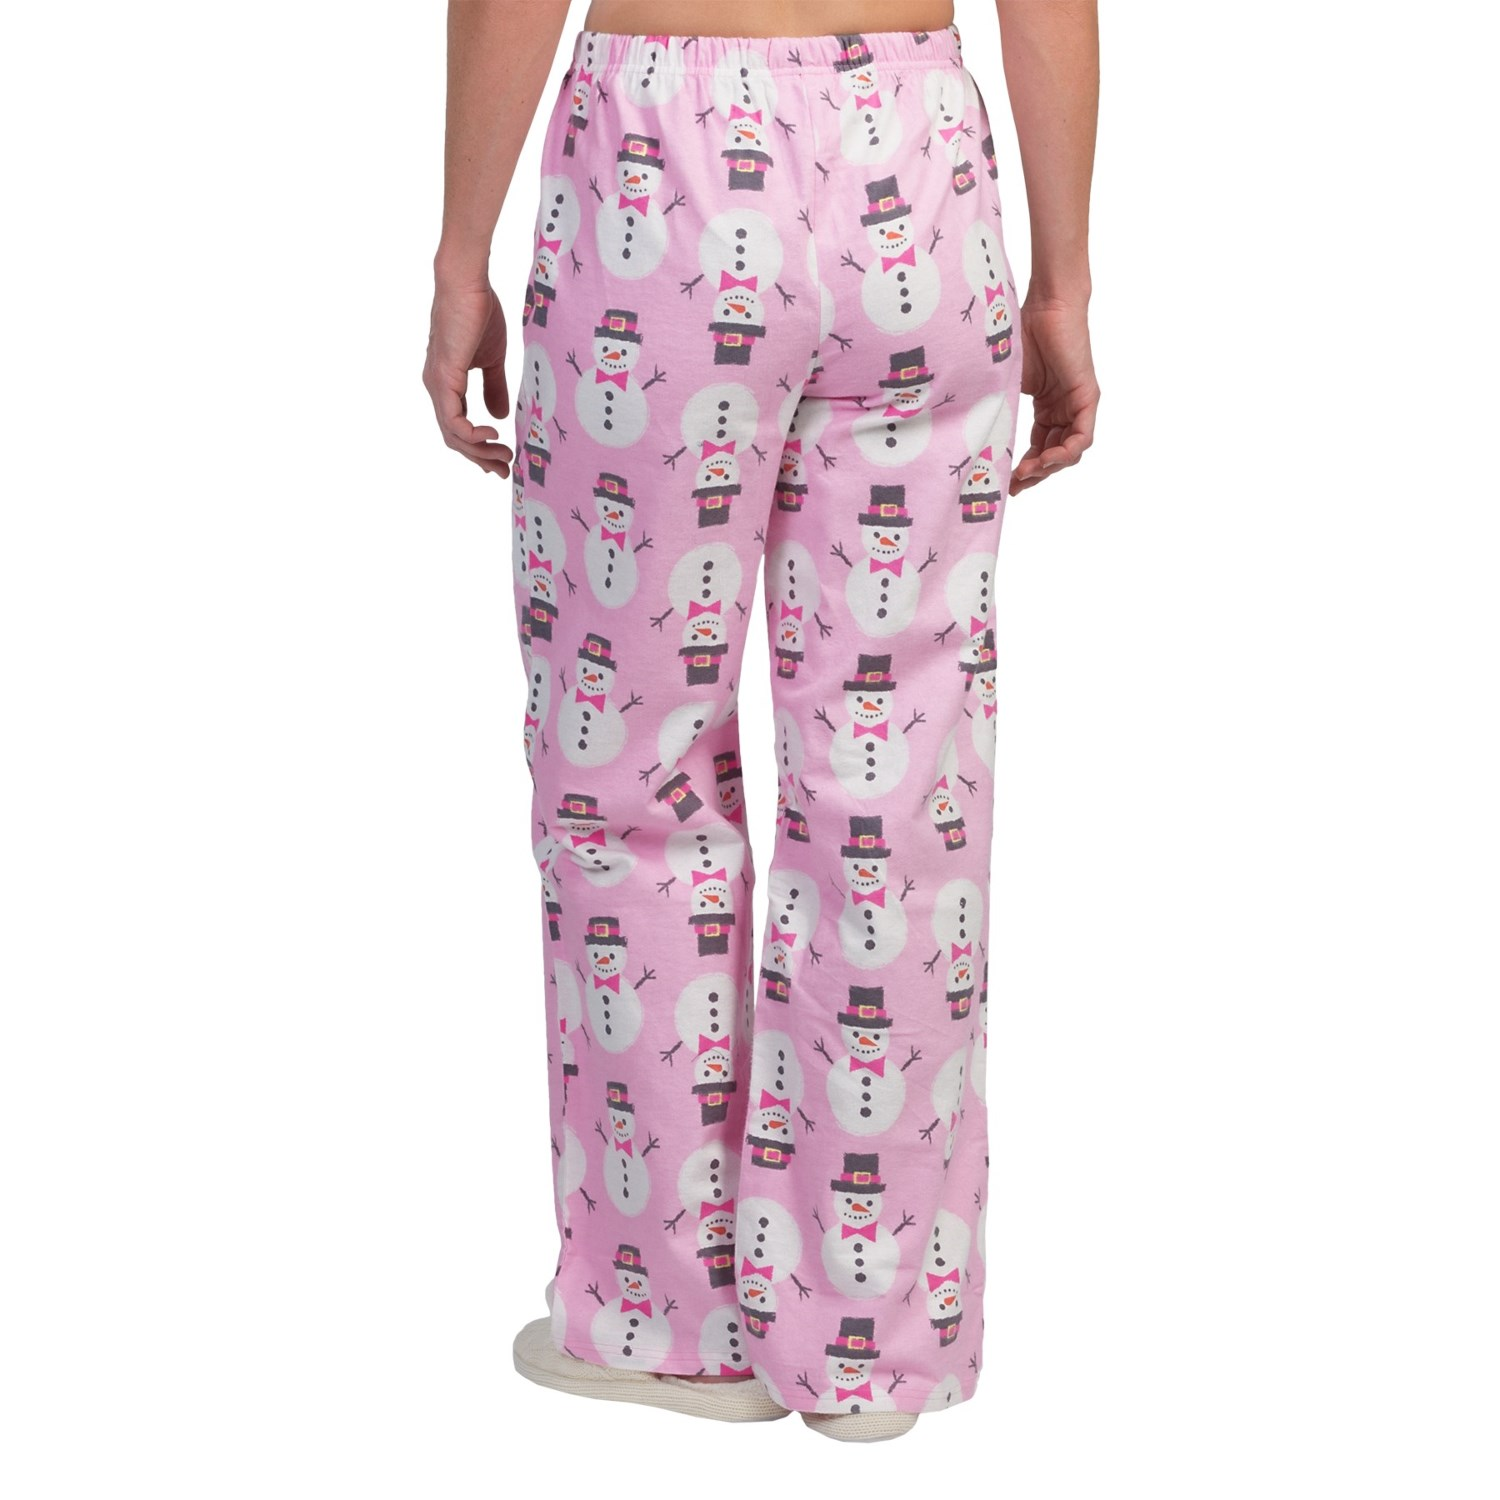 66afbbe14d KayAnna Printed Flannel Pajama Bottoms (For Women) - Save 56%